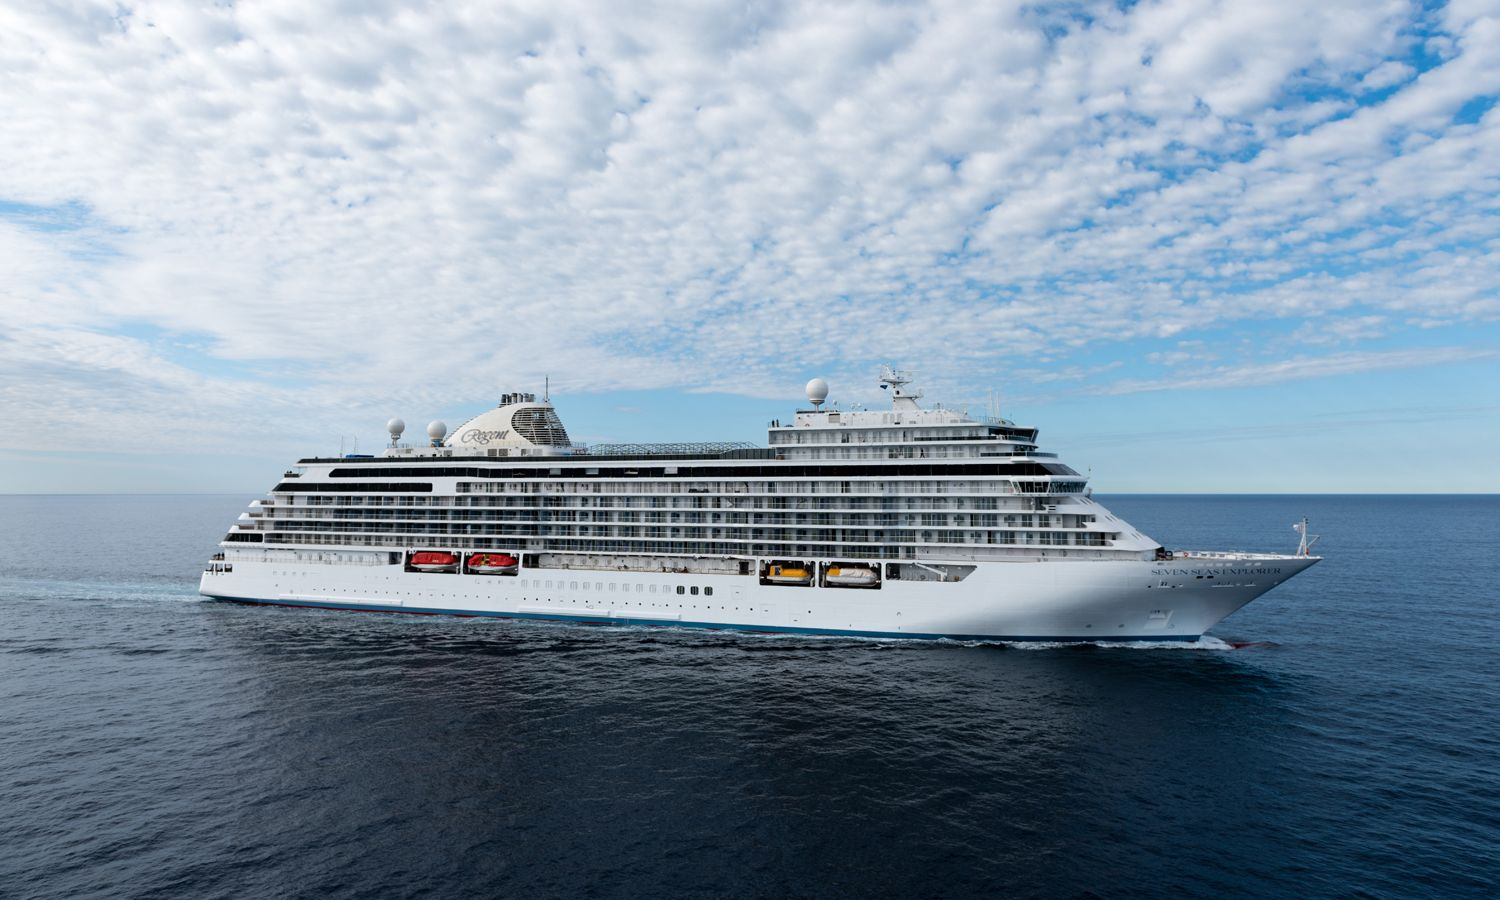 What To Do On The World's Most Luxurious Cruise